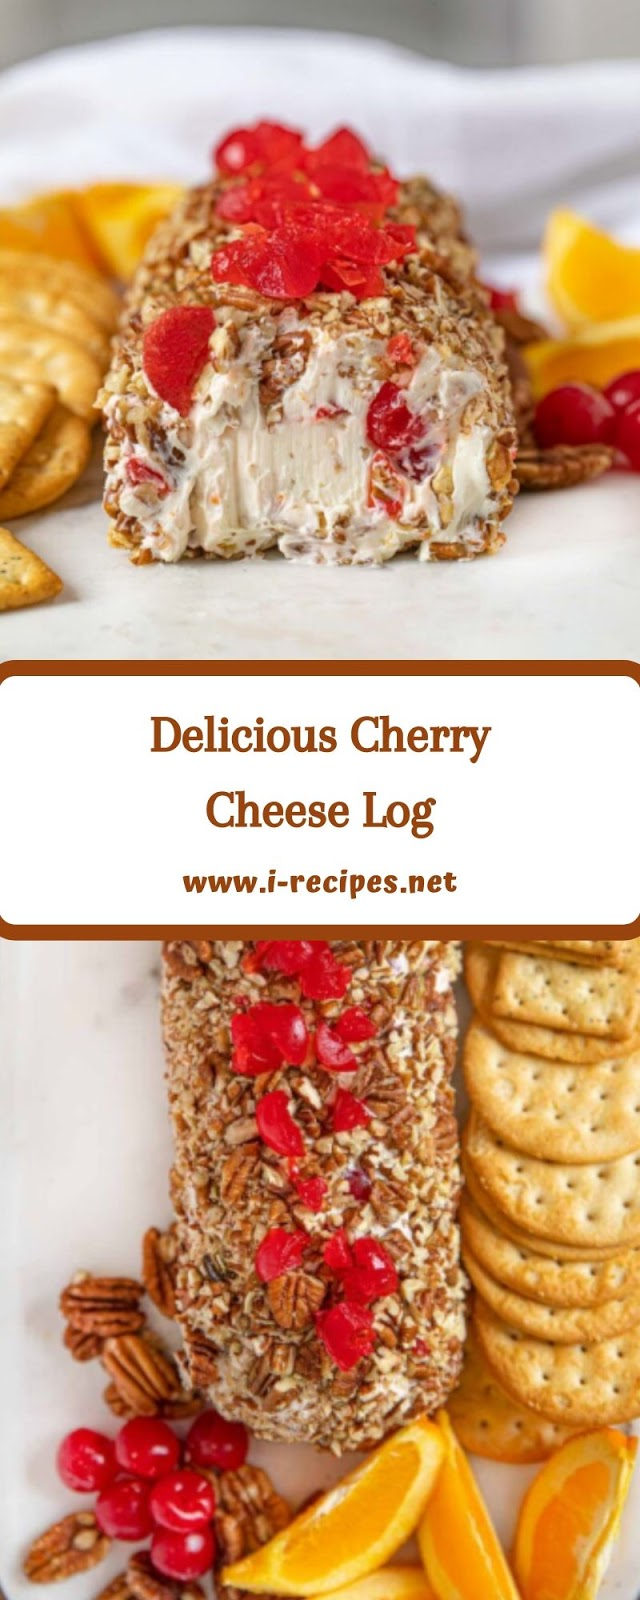 Delicious Cherry Cheese Log